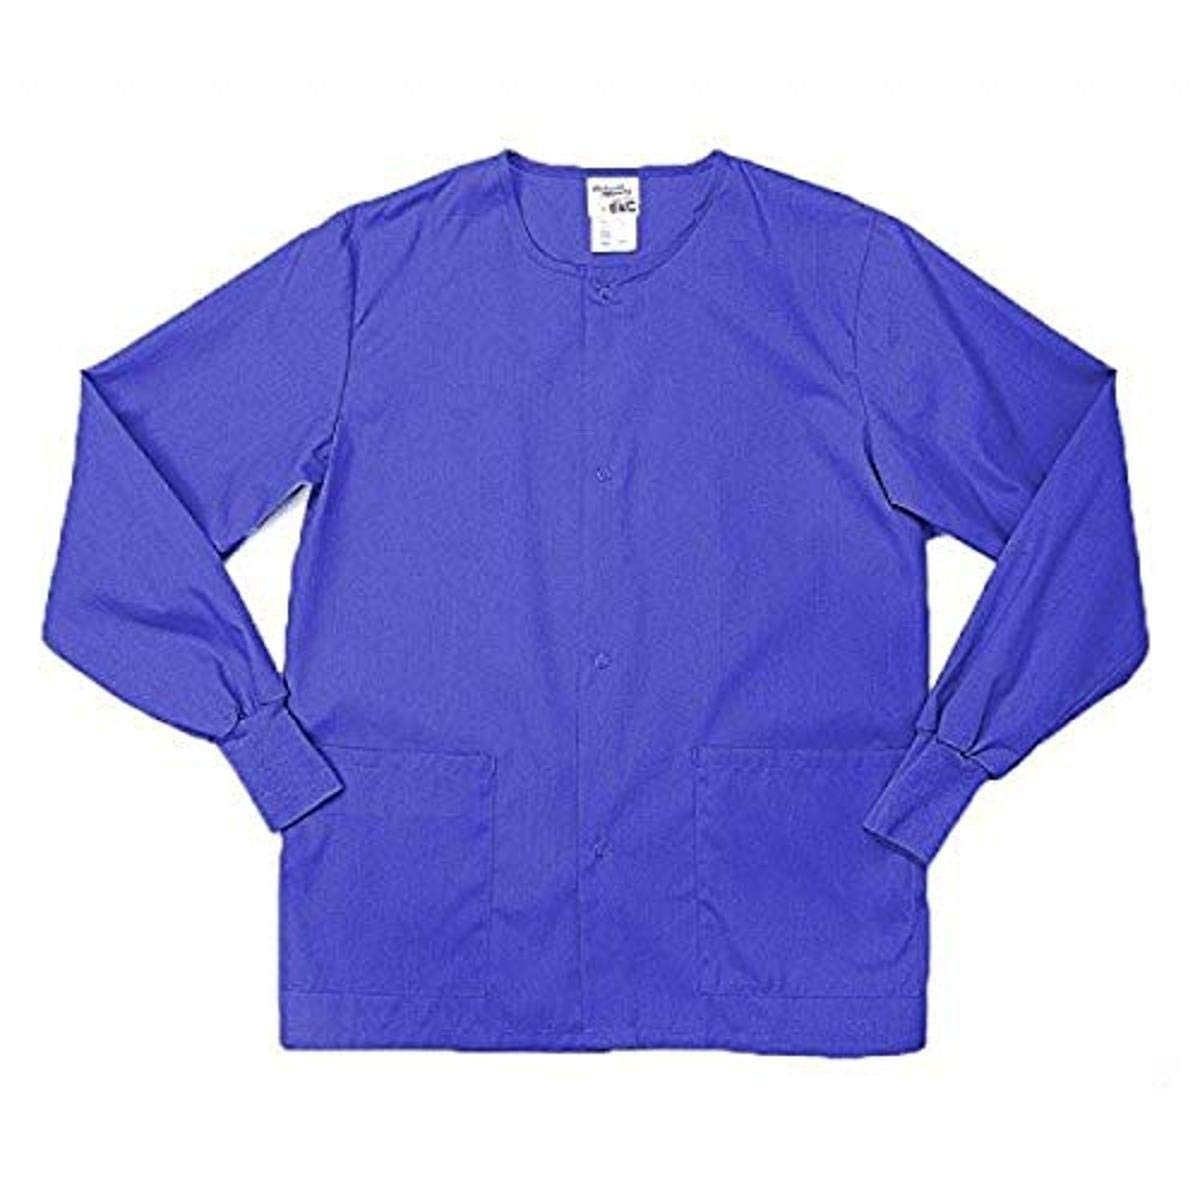 Pinnacle Textile SW68F 4.25 OZ 65/35 Polyester/Cotton, Female Warm UP JACKET-4X-Large-Royal Blue